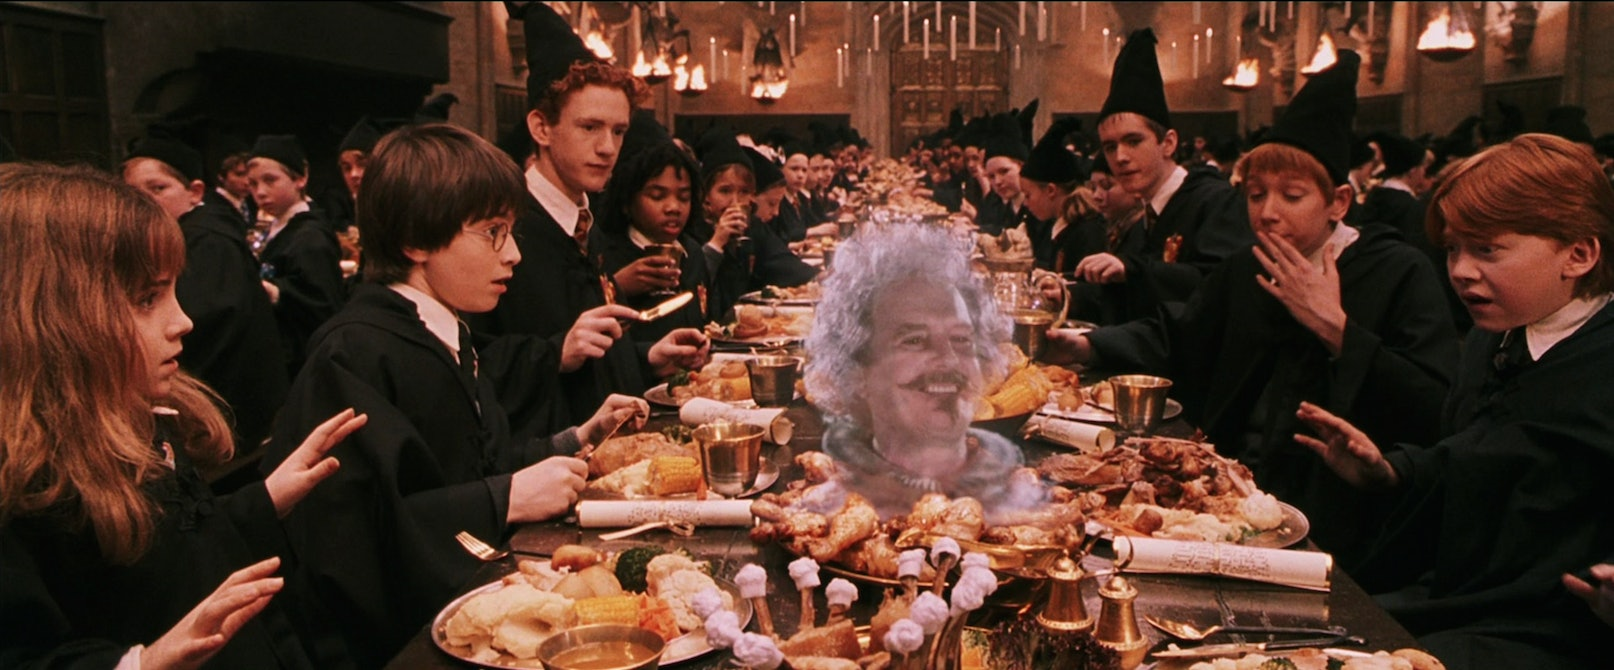 A Harry PotterThemed Brunch Is Coming To New York City Yes